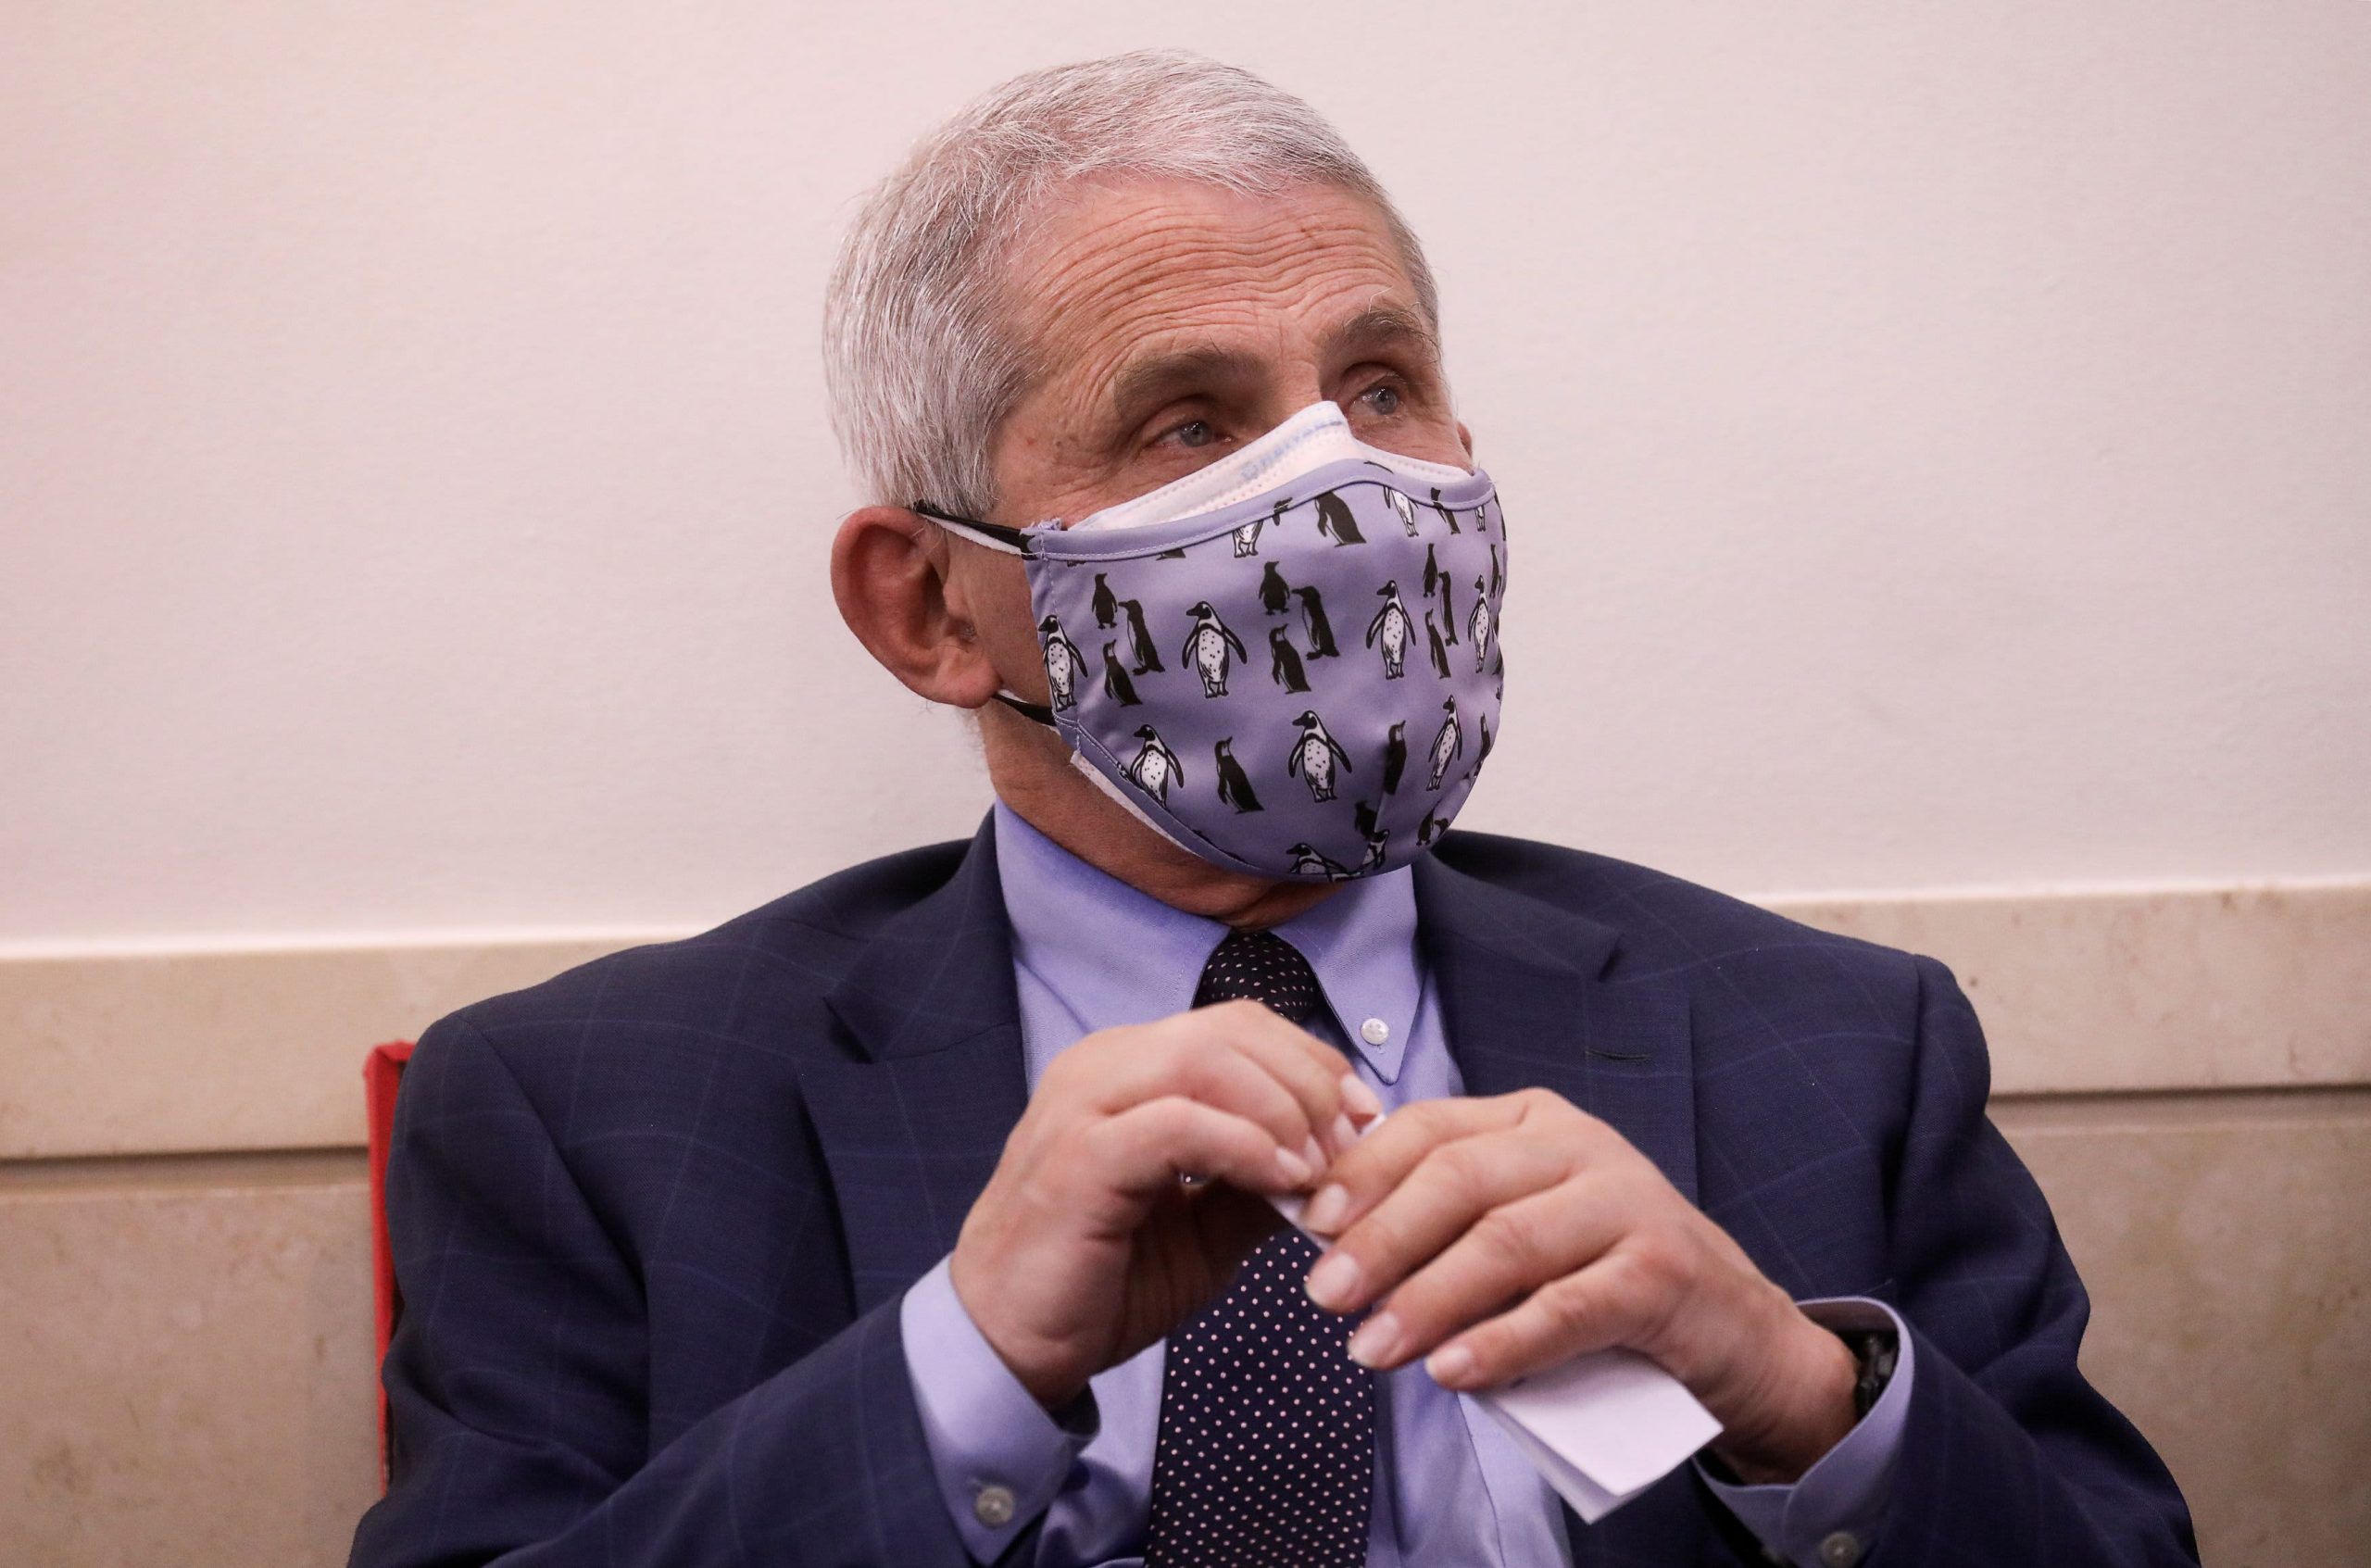 Dr. Fauci says UK's assessment 'much less deep' than U.S.